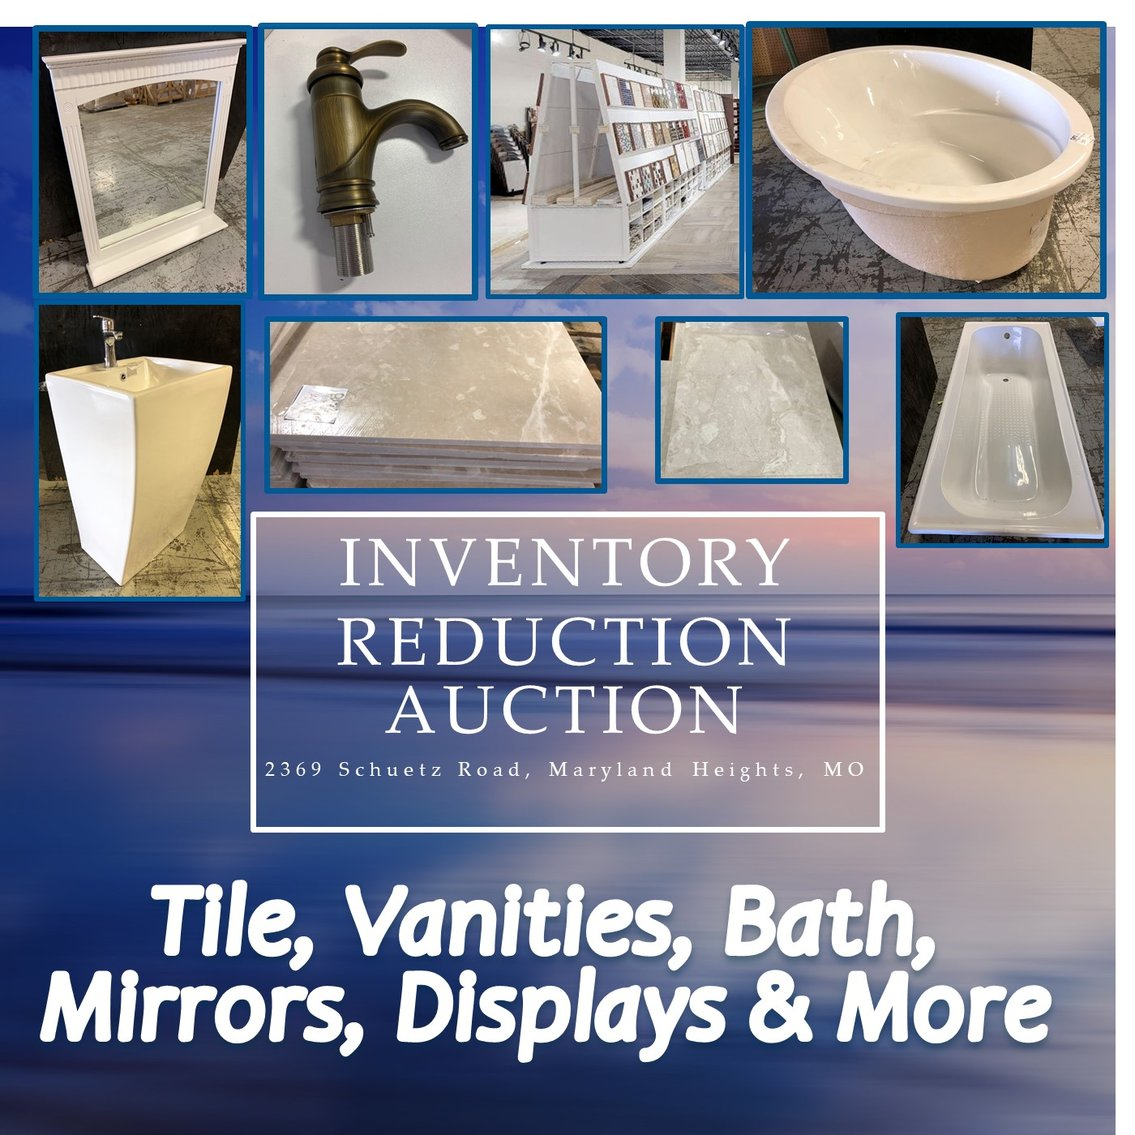 Inventory Reduction - Tile, Vanities, Bath and More!